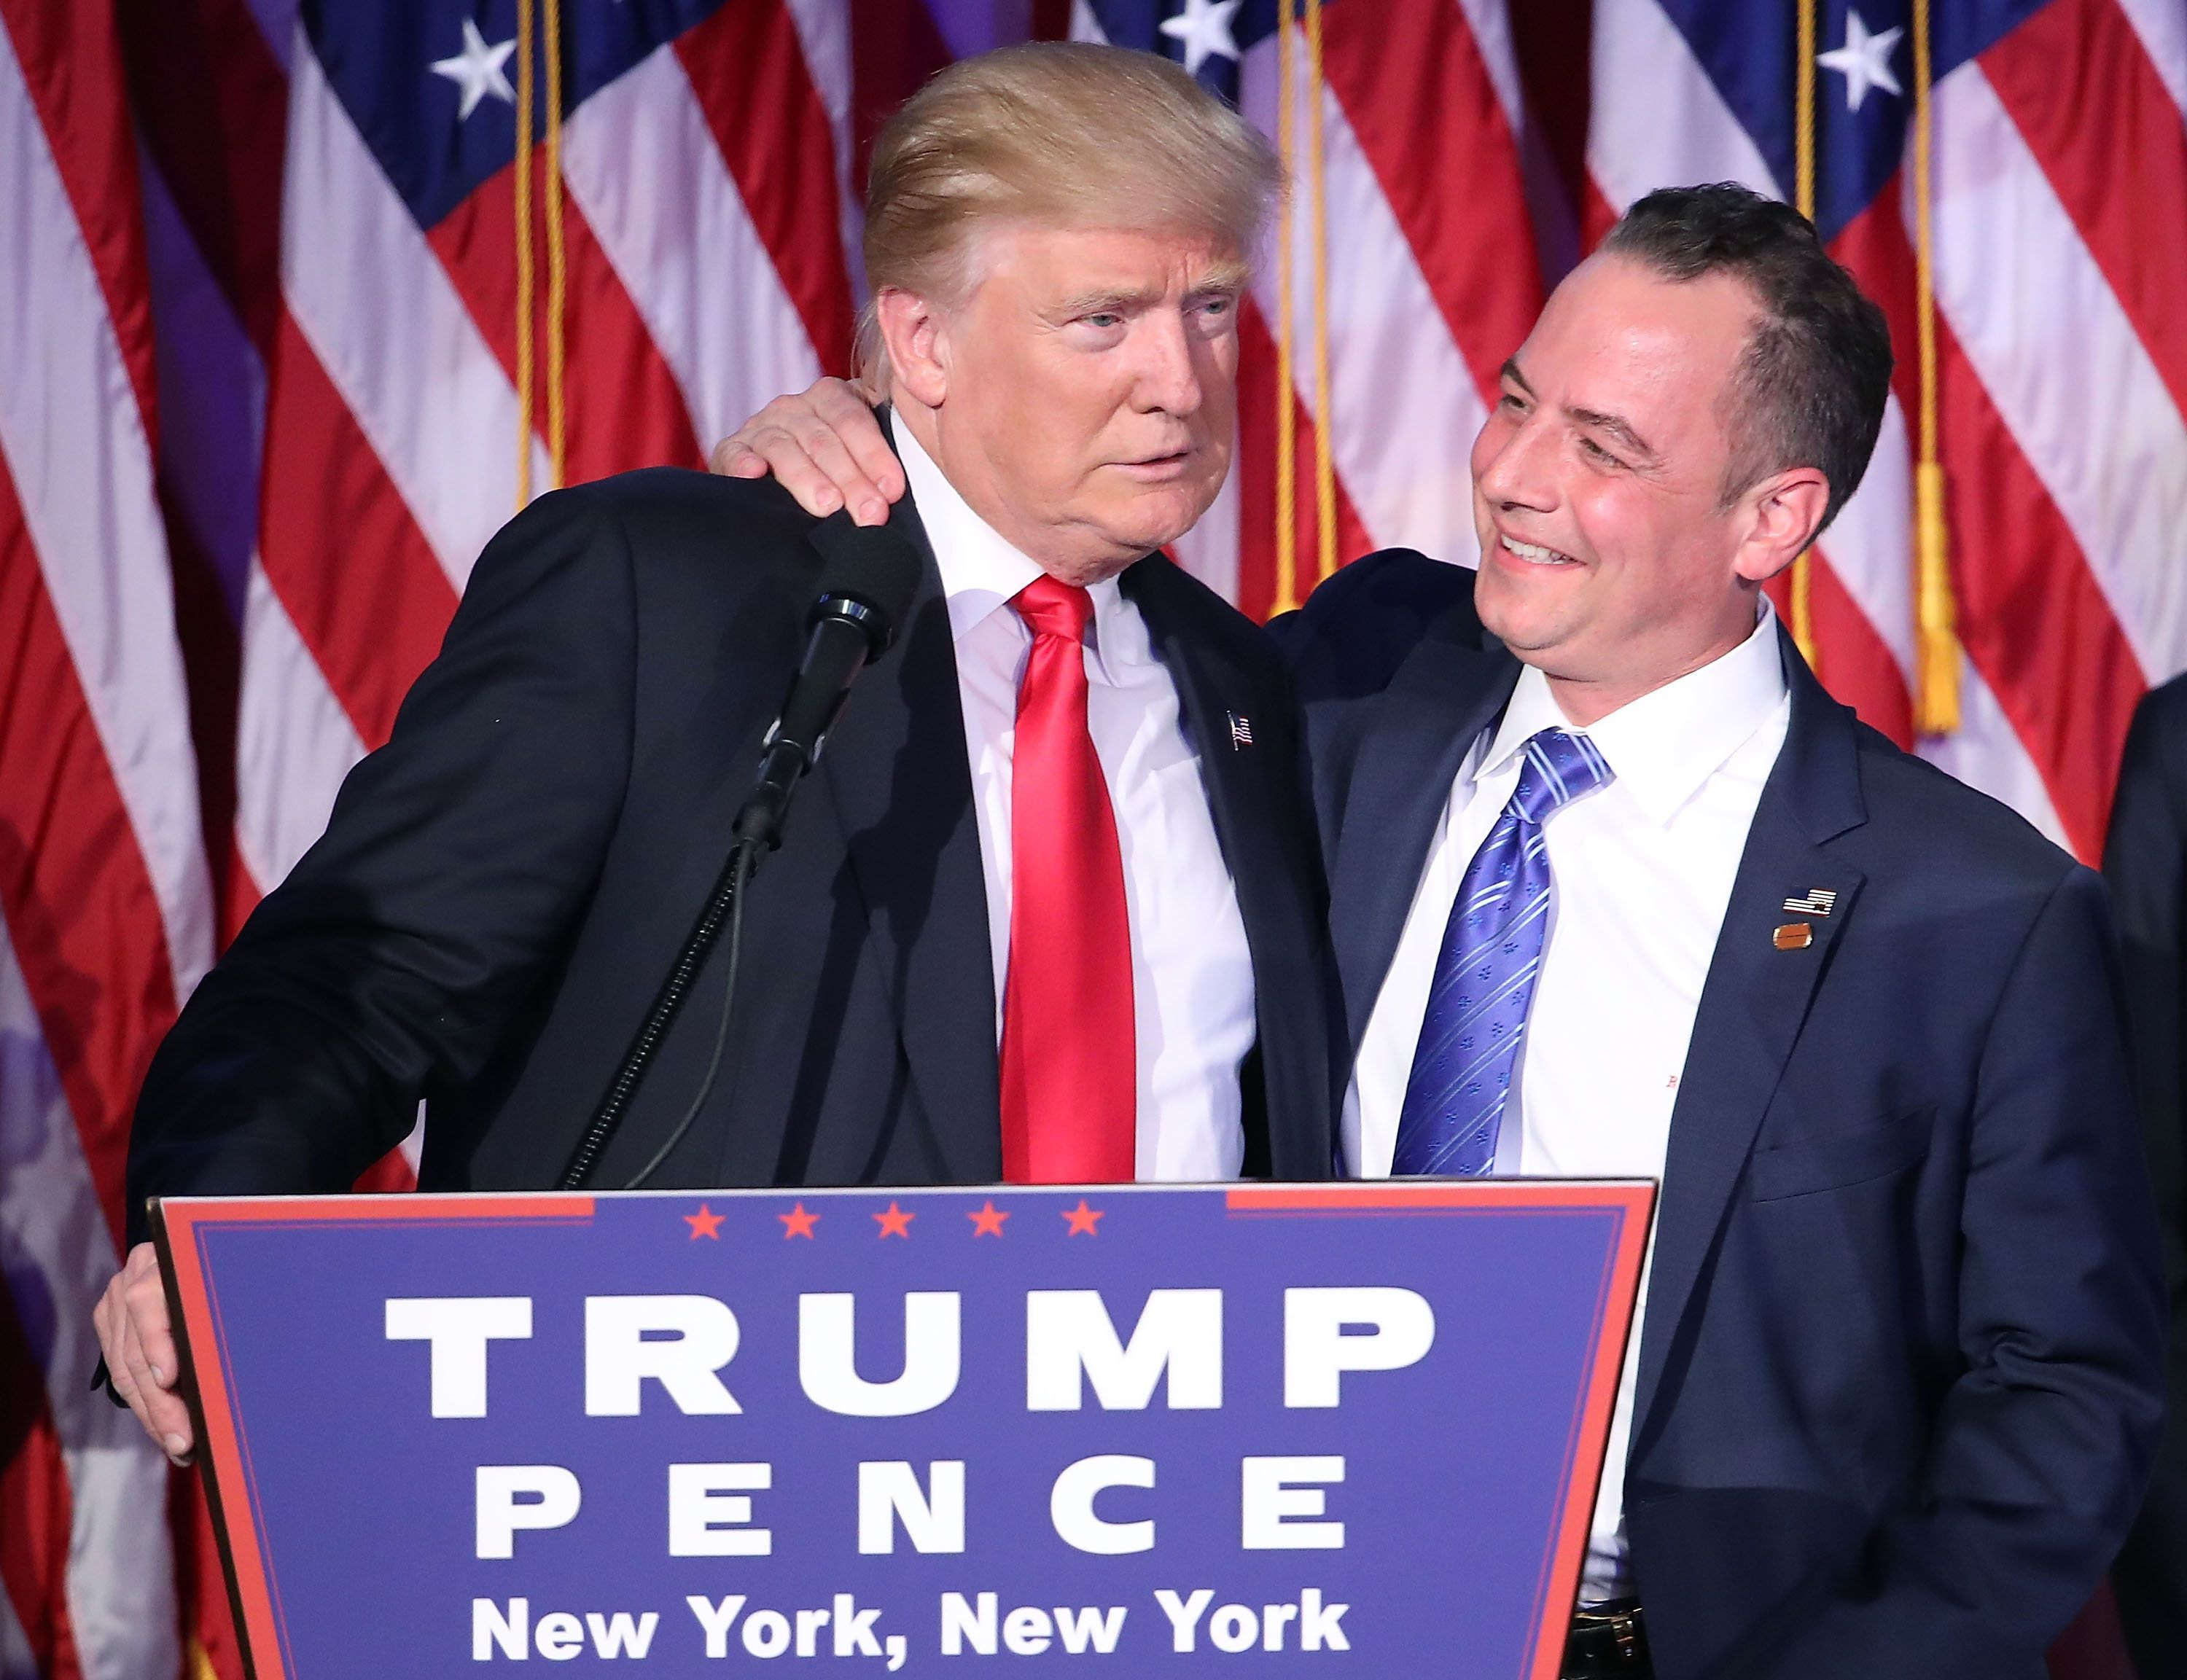 Donald Trumpand Reince Priebus, chairman of the Republican National Committee, on Nov. 9 in New York.